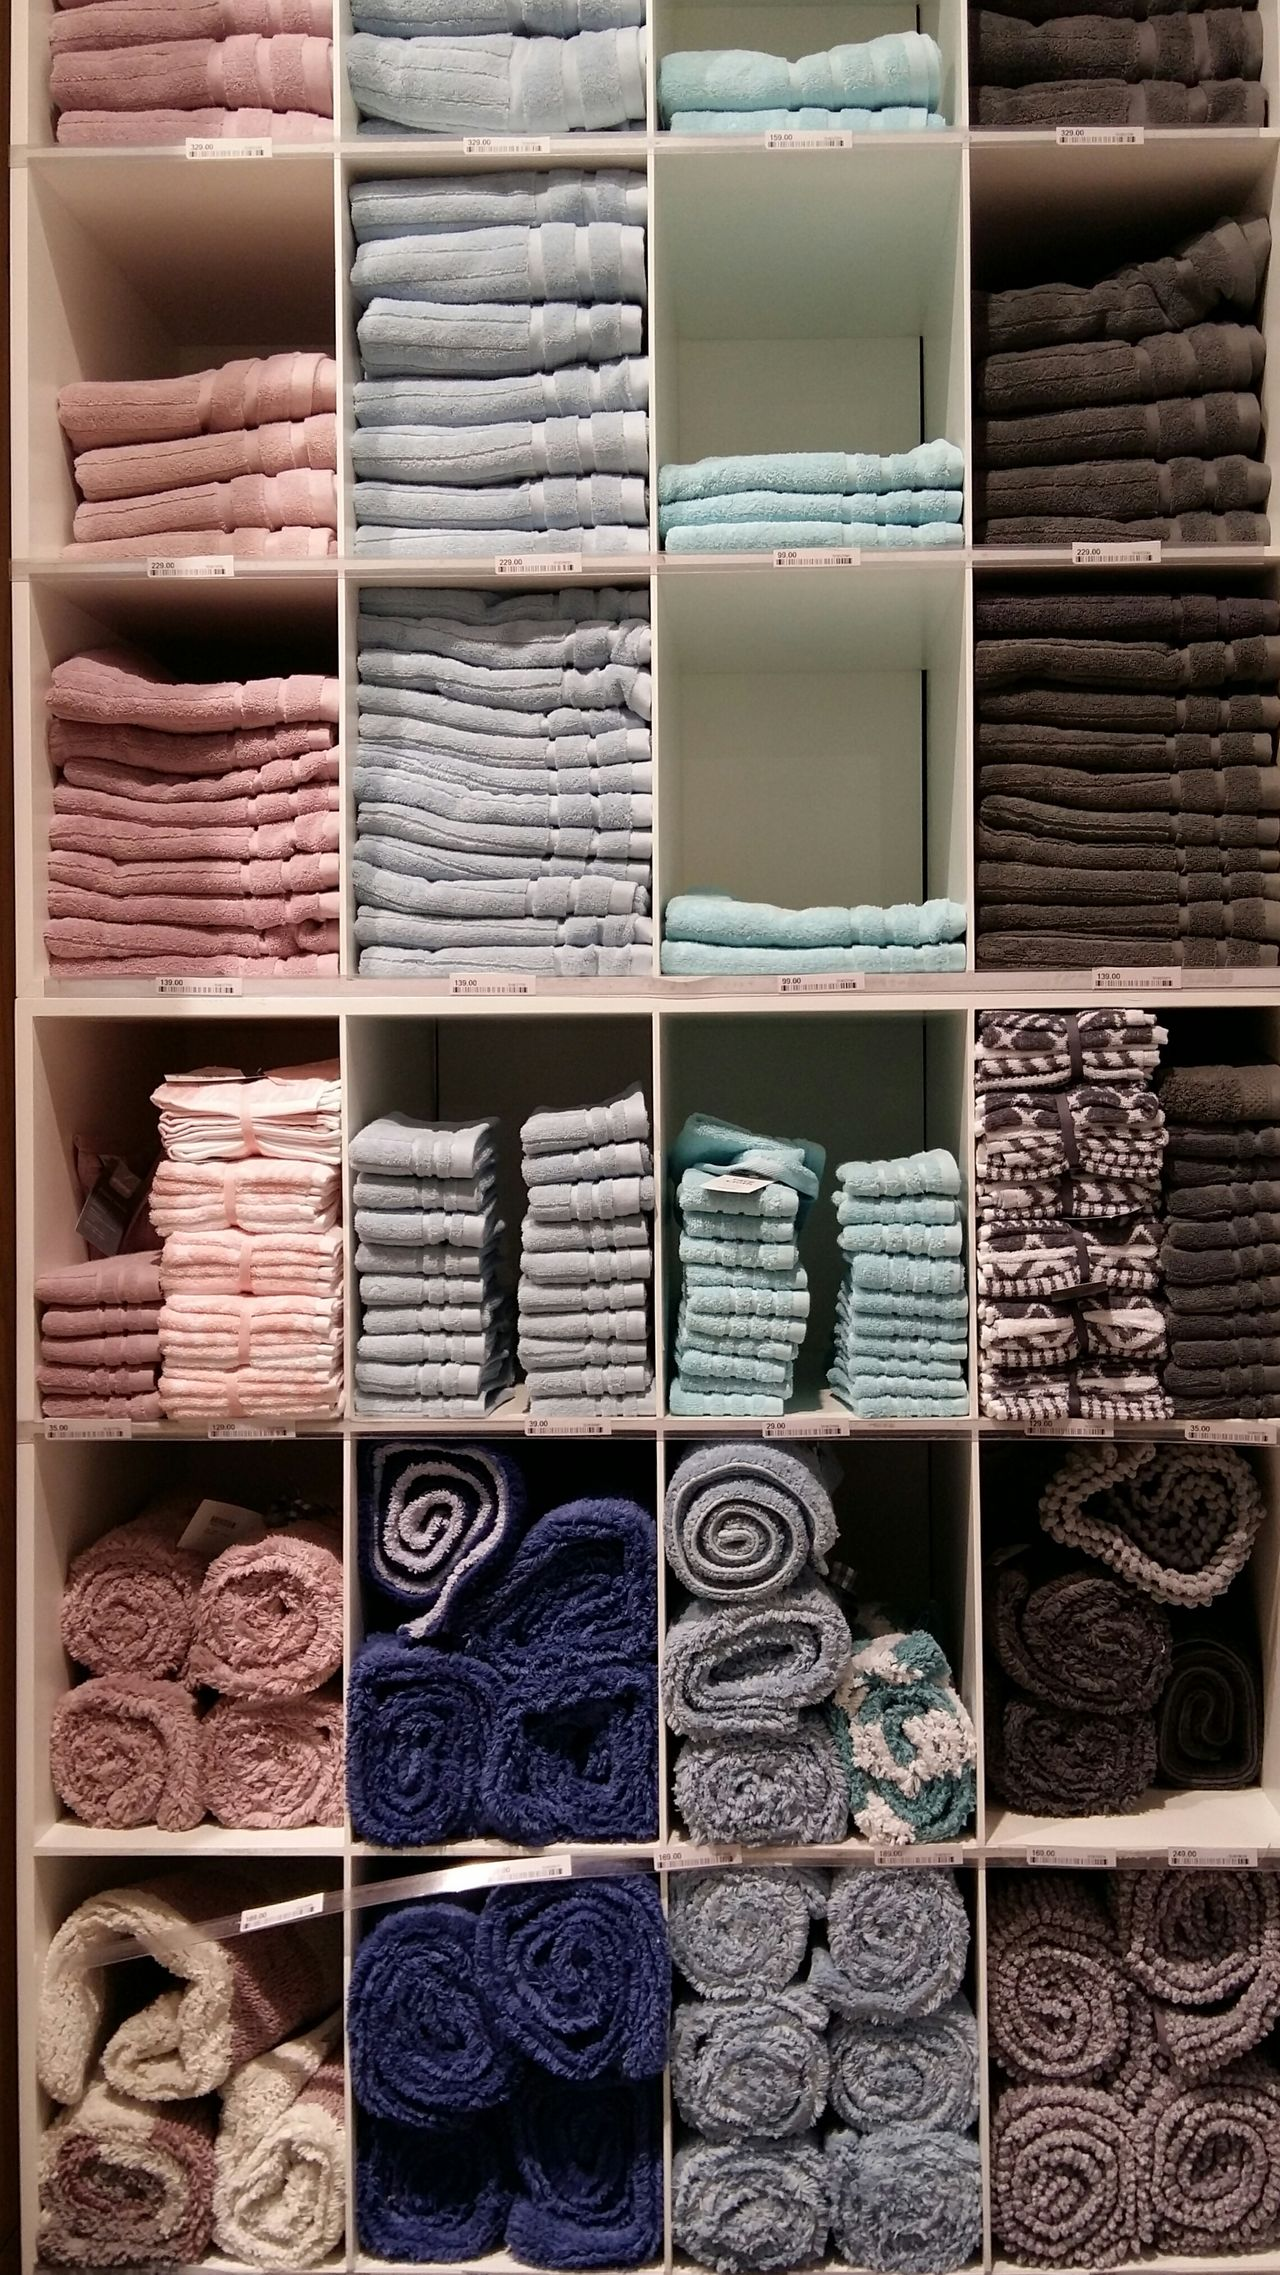 Stacked Neat & Tidy Neatly Arranged Neat Places